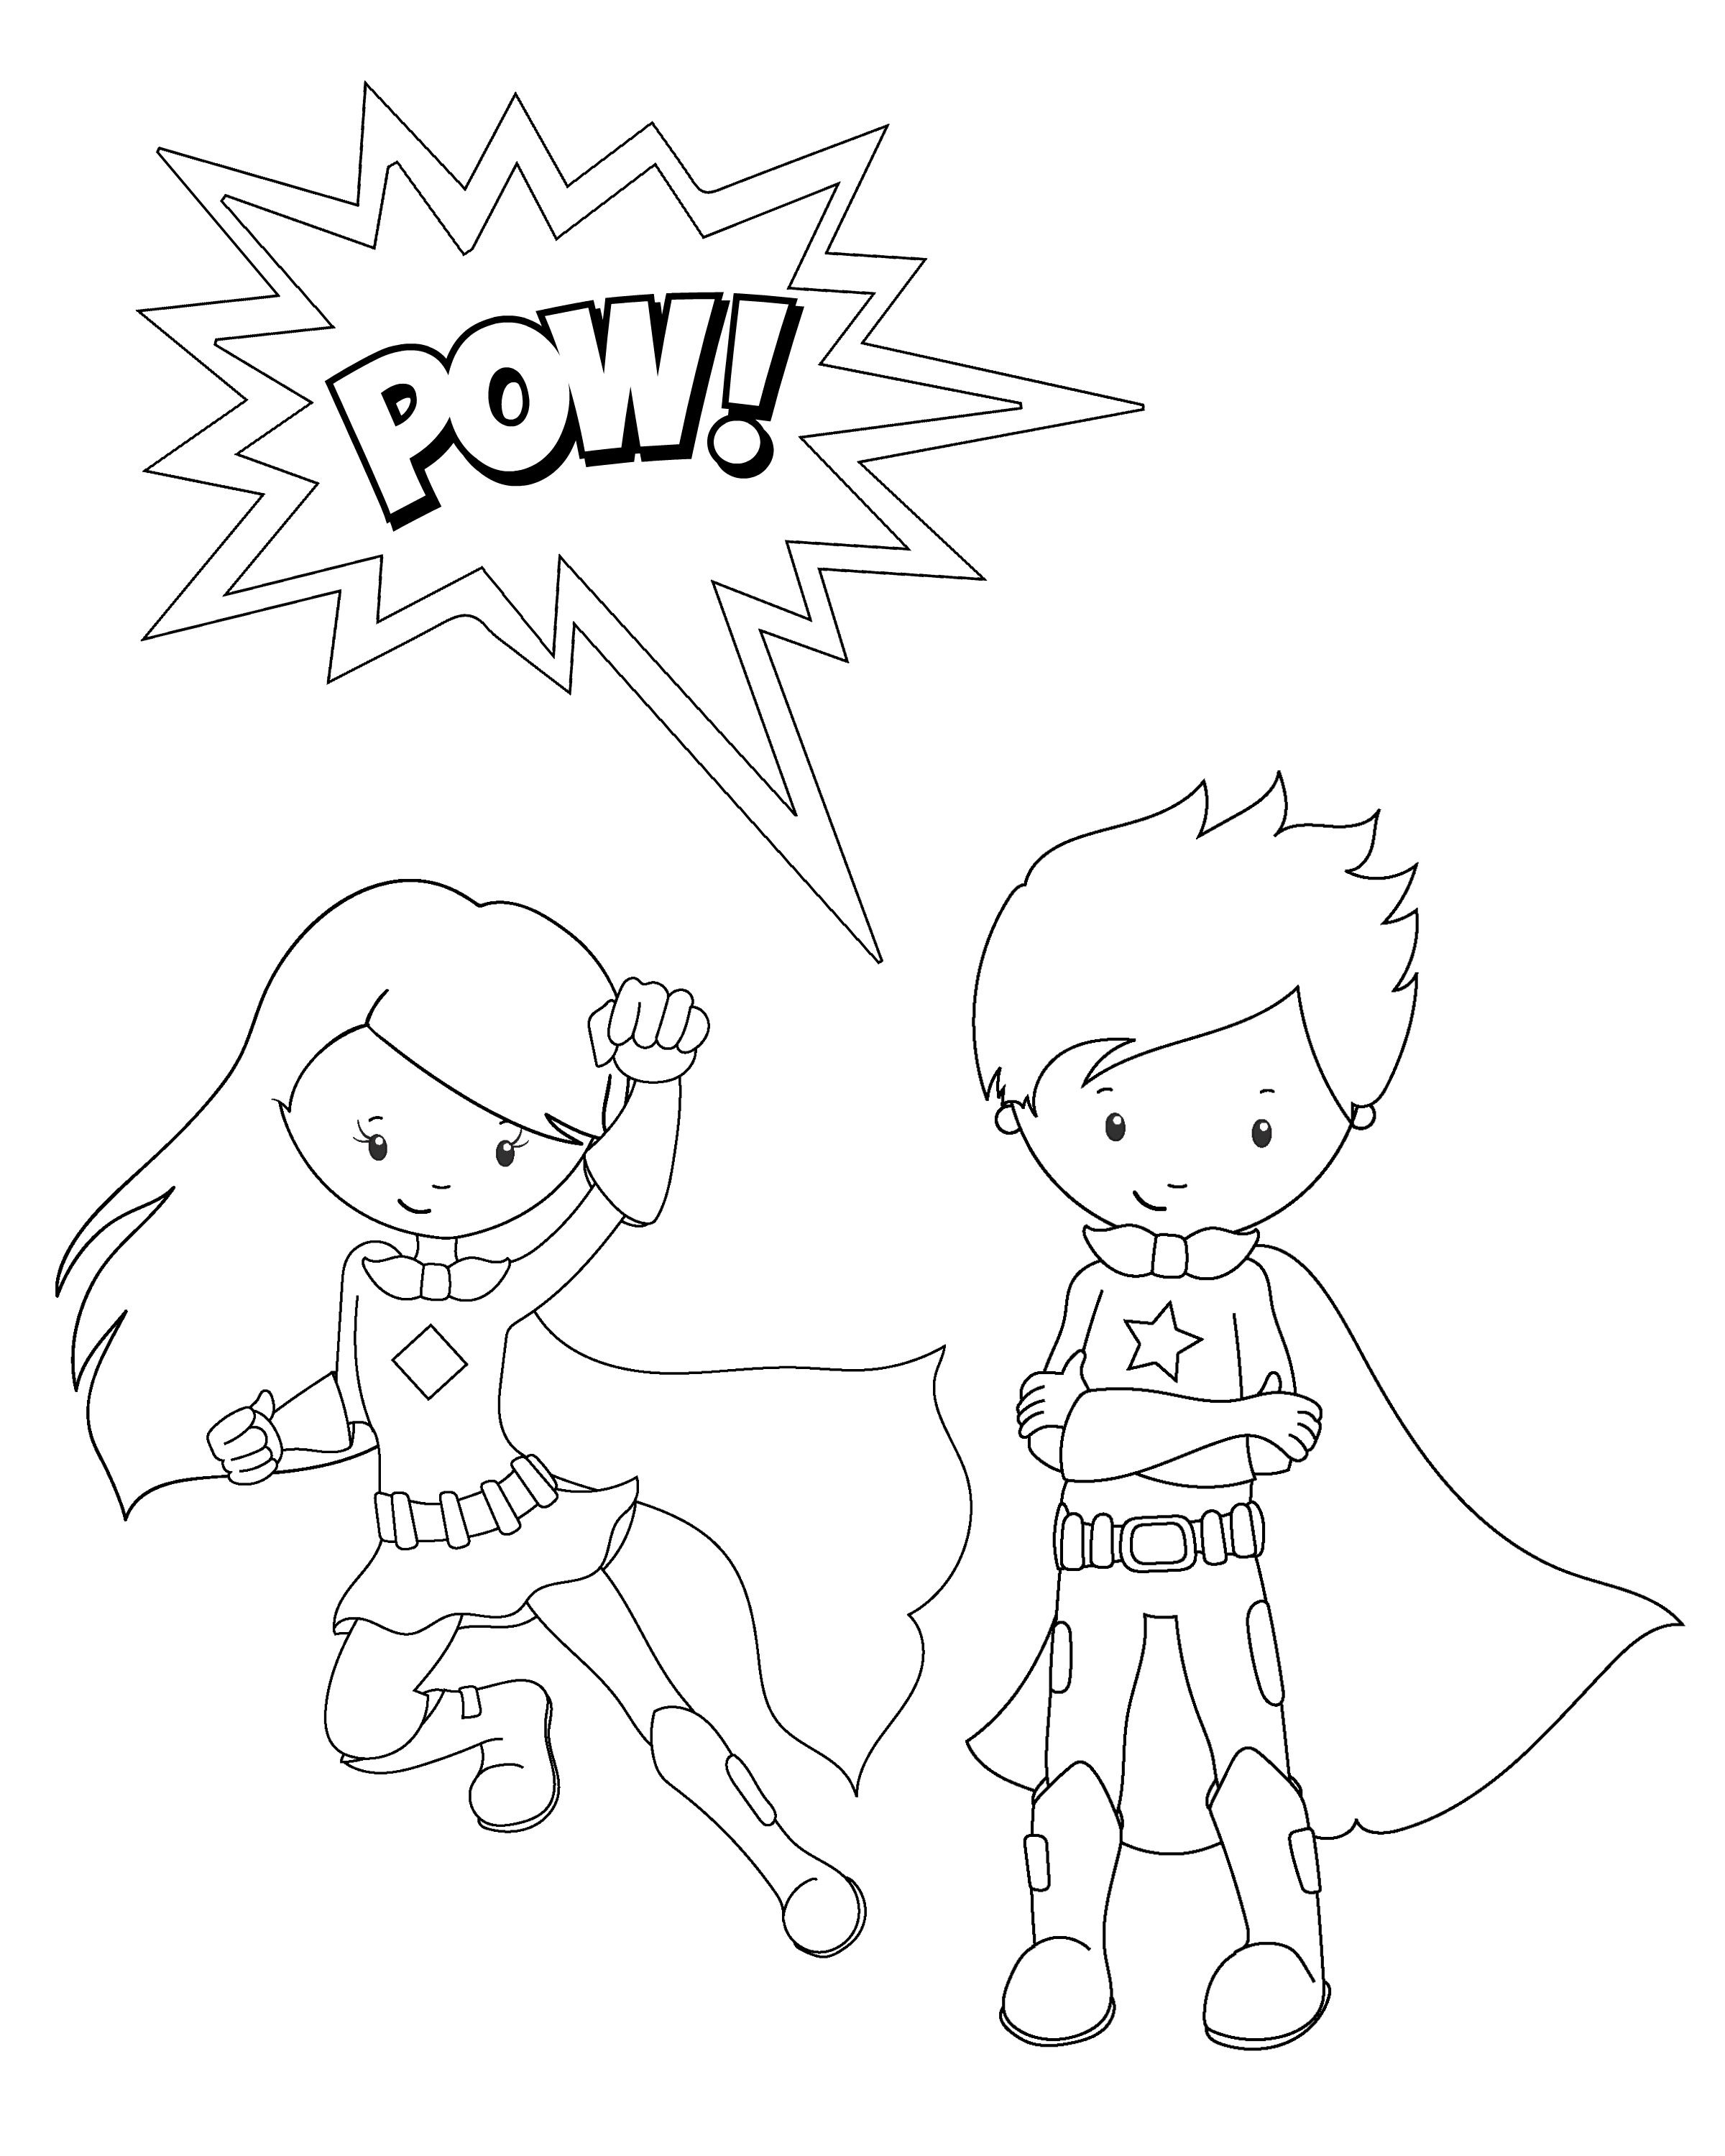 superhero printable coloring pages Collection-Superhero Coloring Pages for Preschoolers Printable Superhero Coloring Book Pages Awesome 0 0d Spiderman 3-l